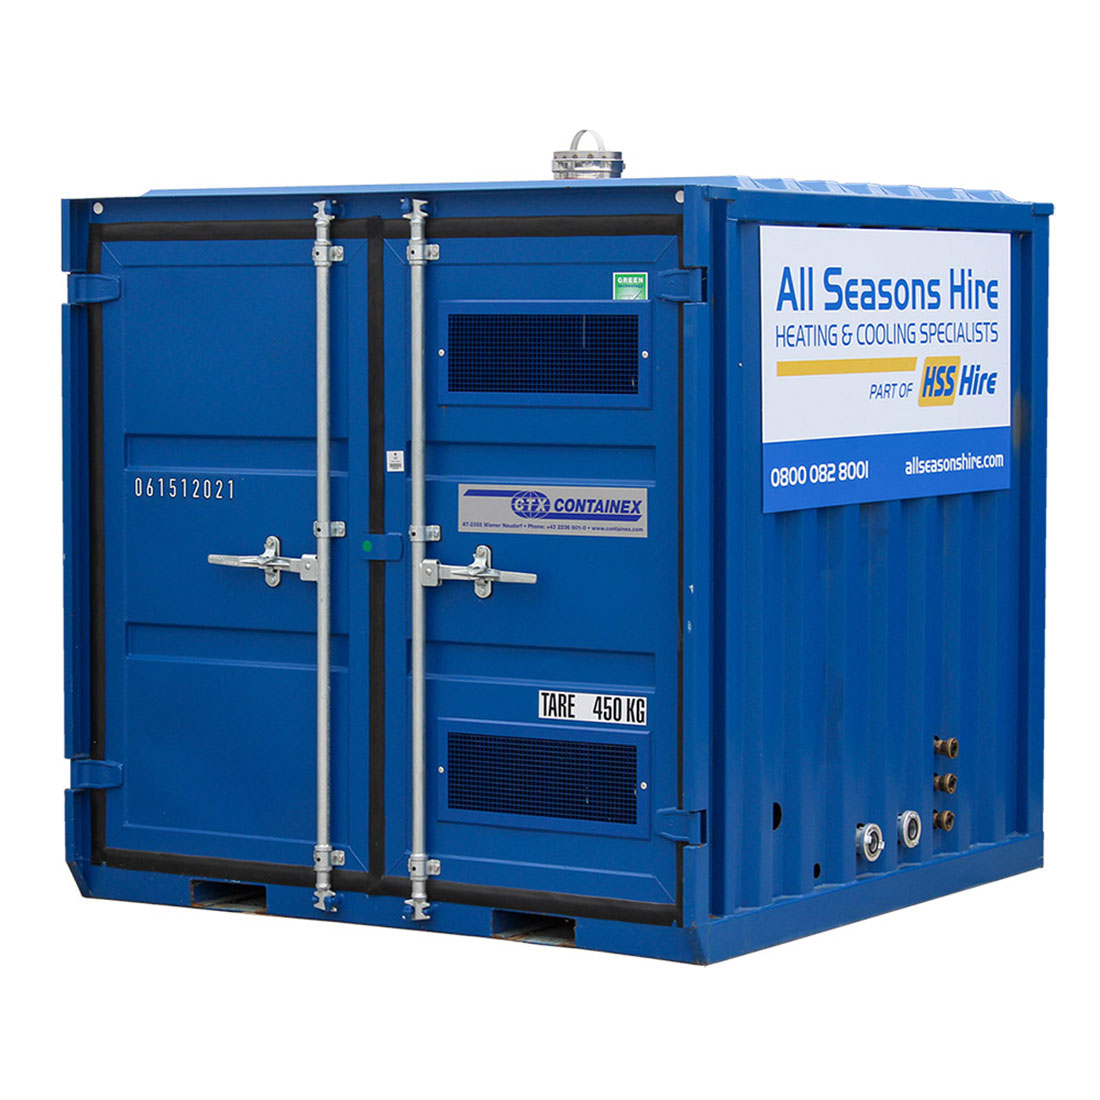 100kW Containerised Boiler